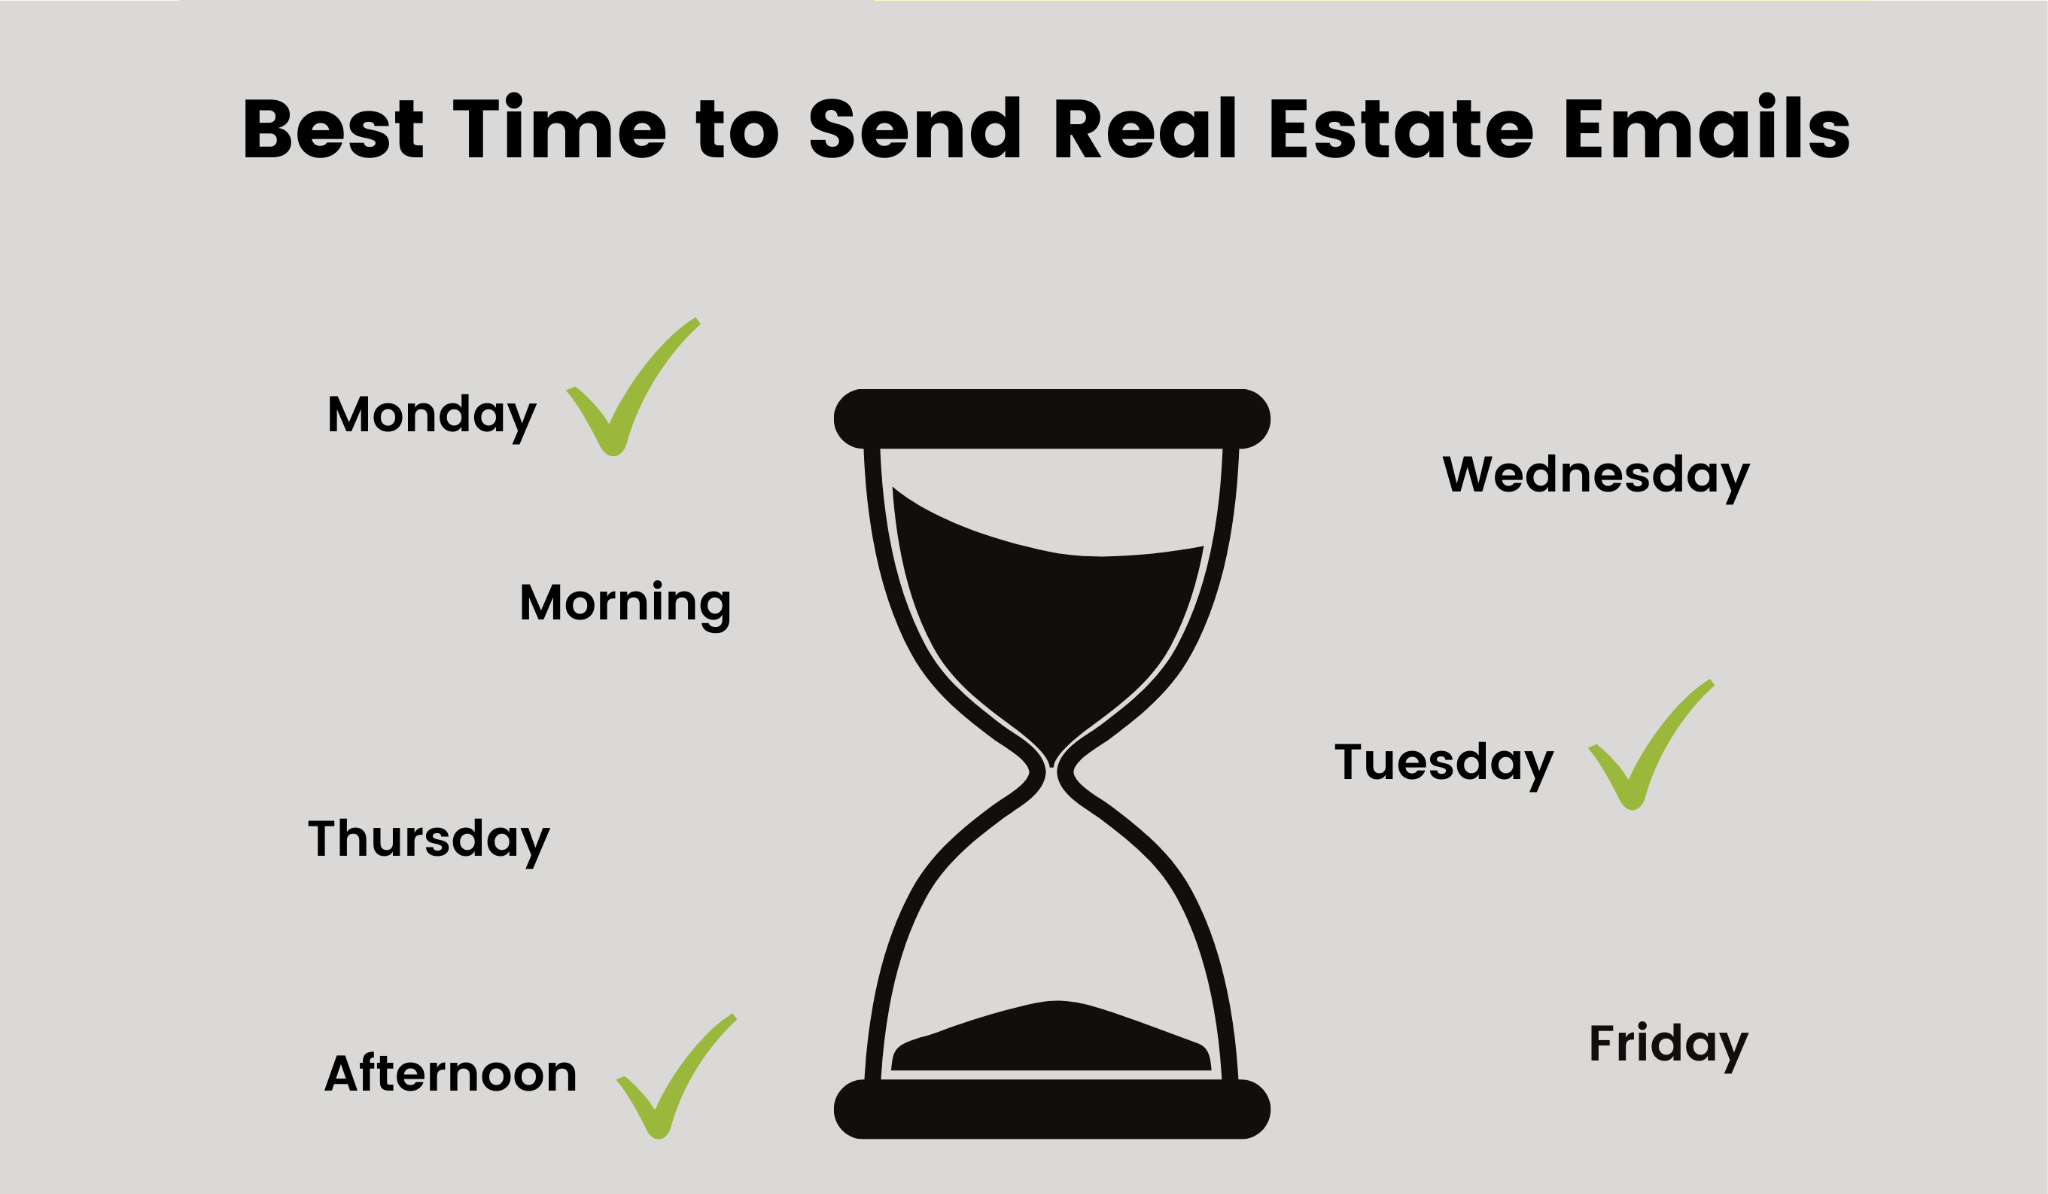 Best times to send real estate emails.